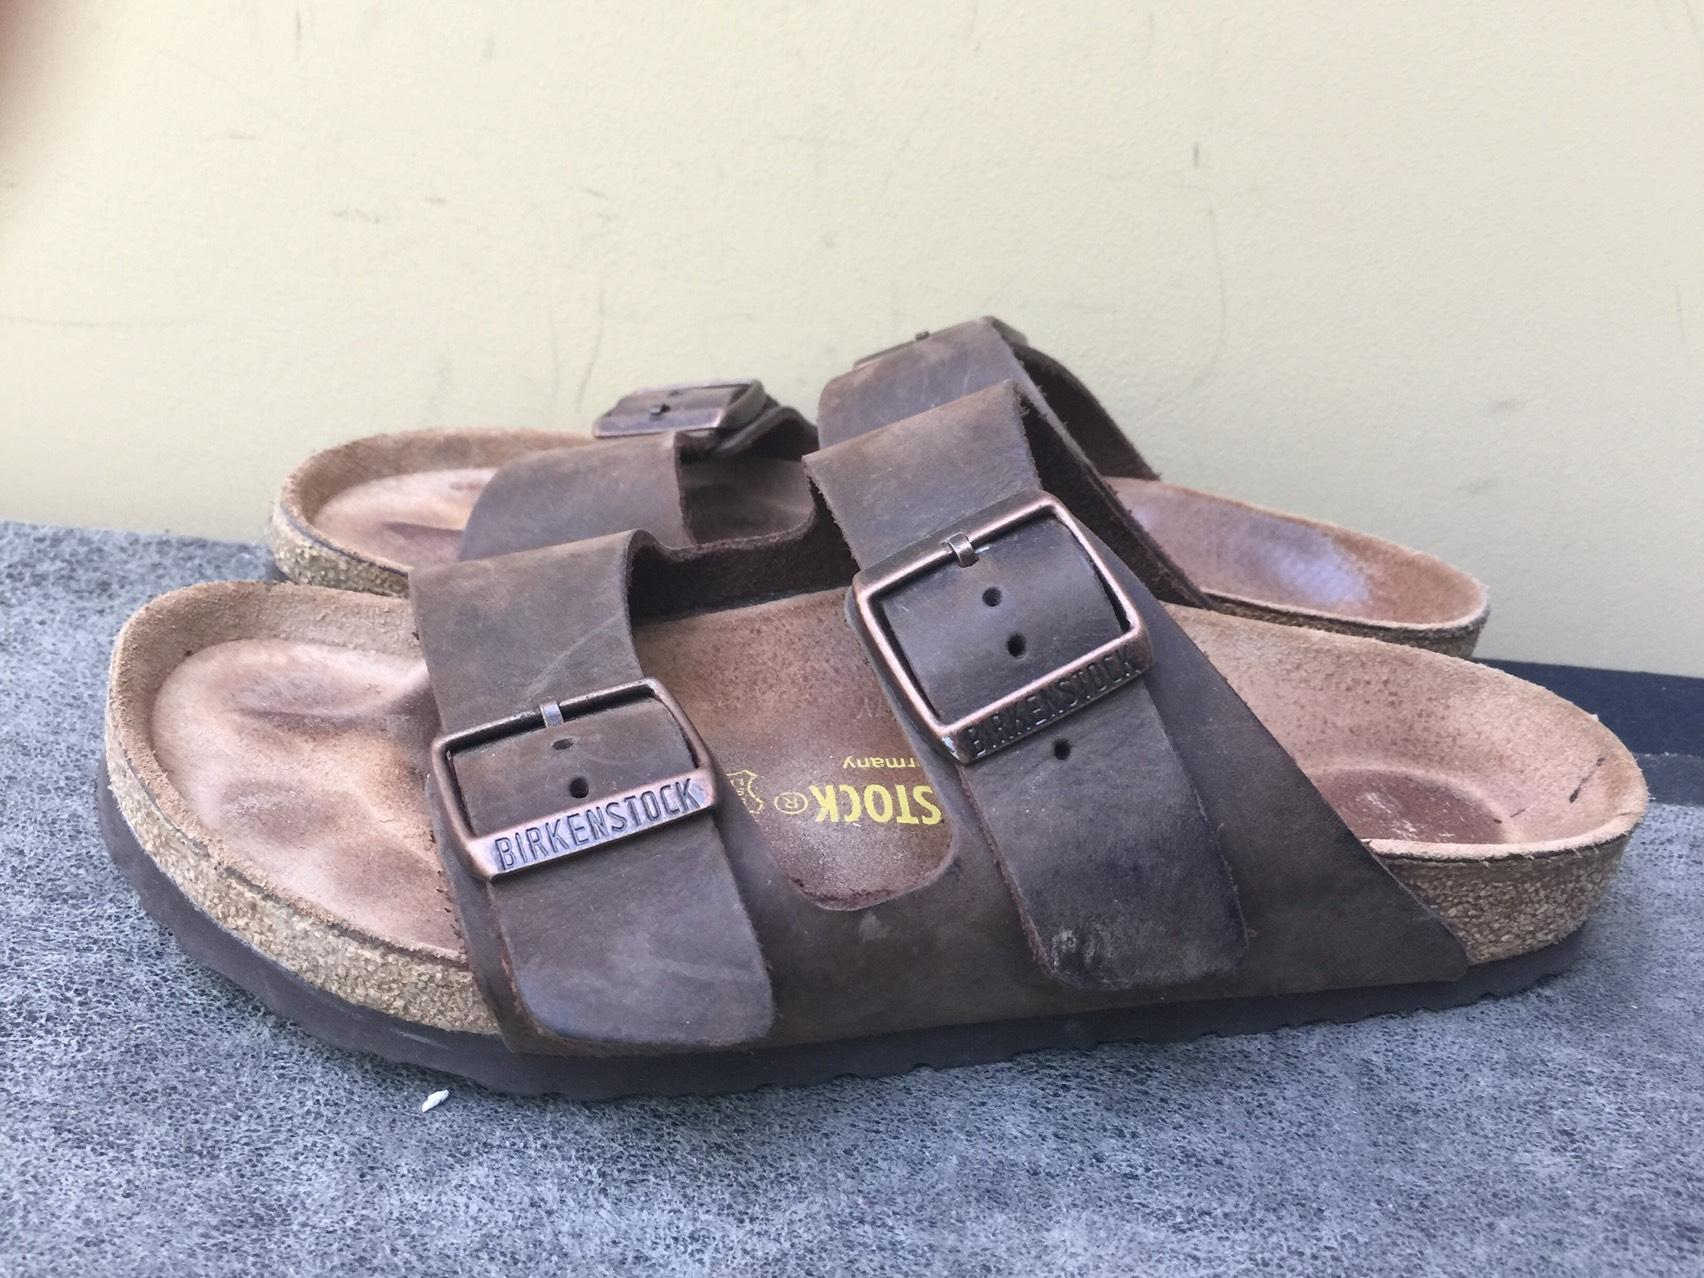 bc86ed6f22 Learn what size birkenstock you need with the help of this size guide from  evo. Wholesale shoes will benefit those who want a good supply of cheap, ...